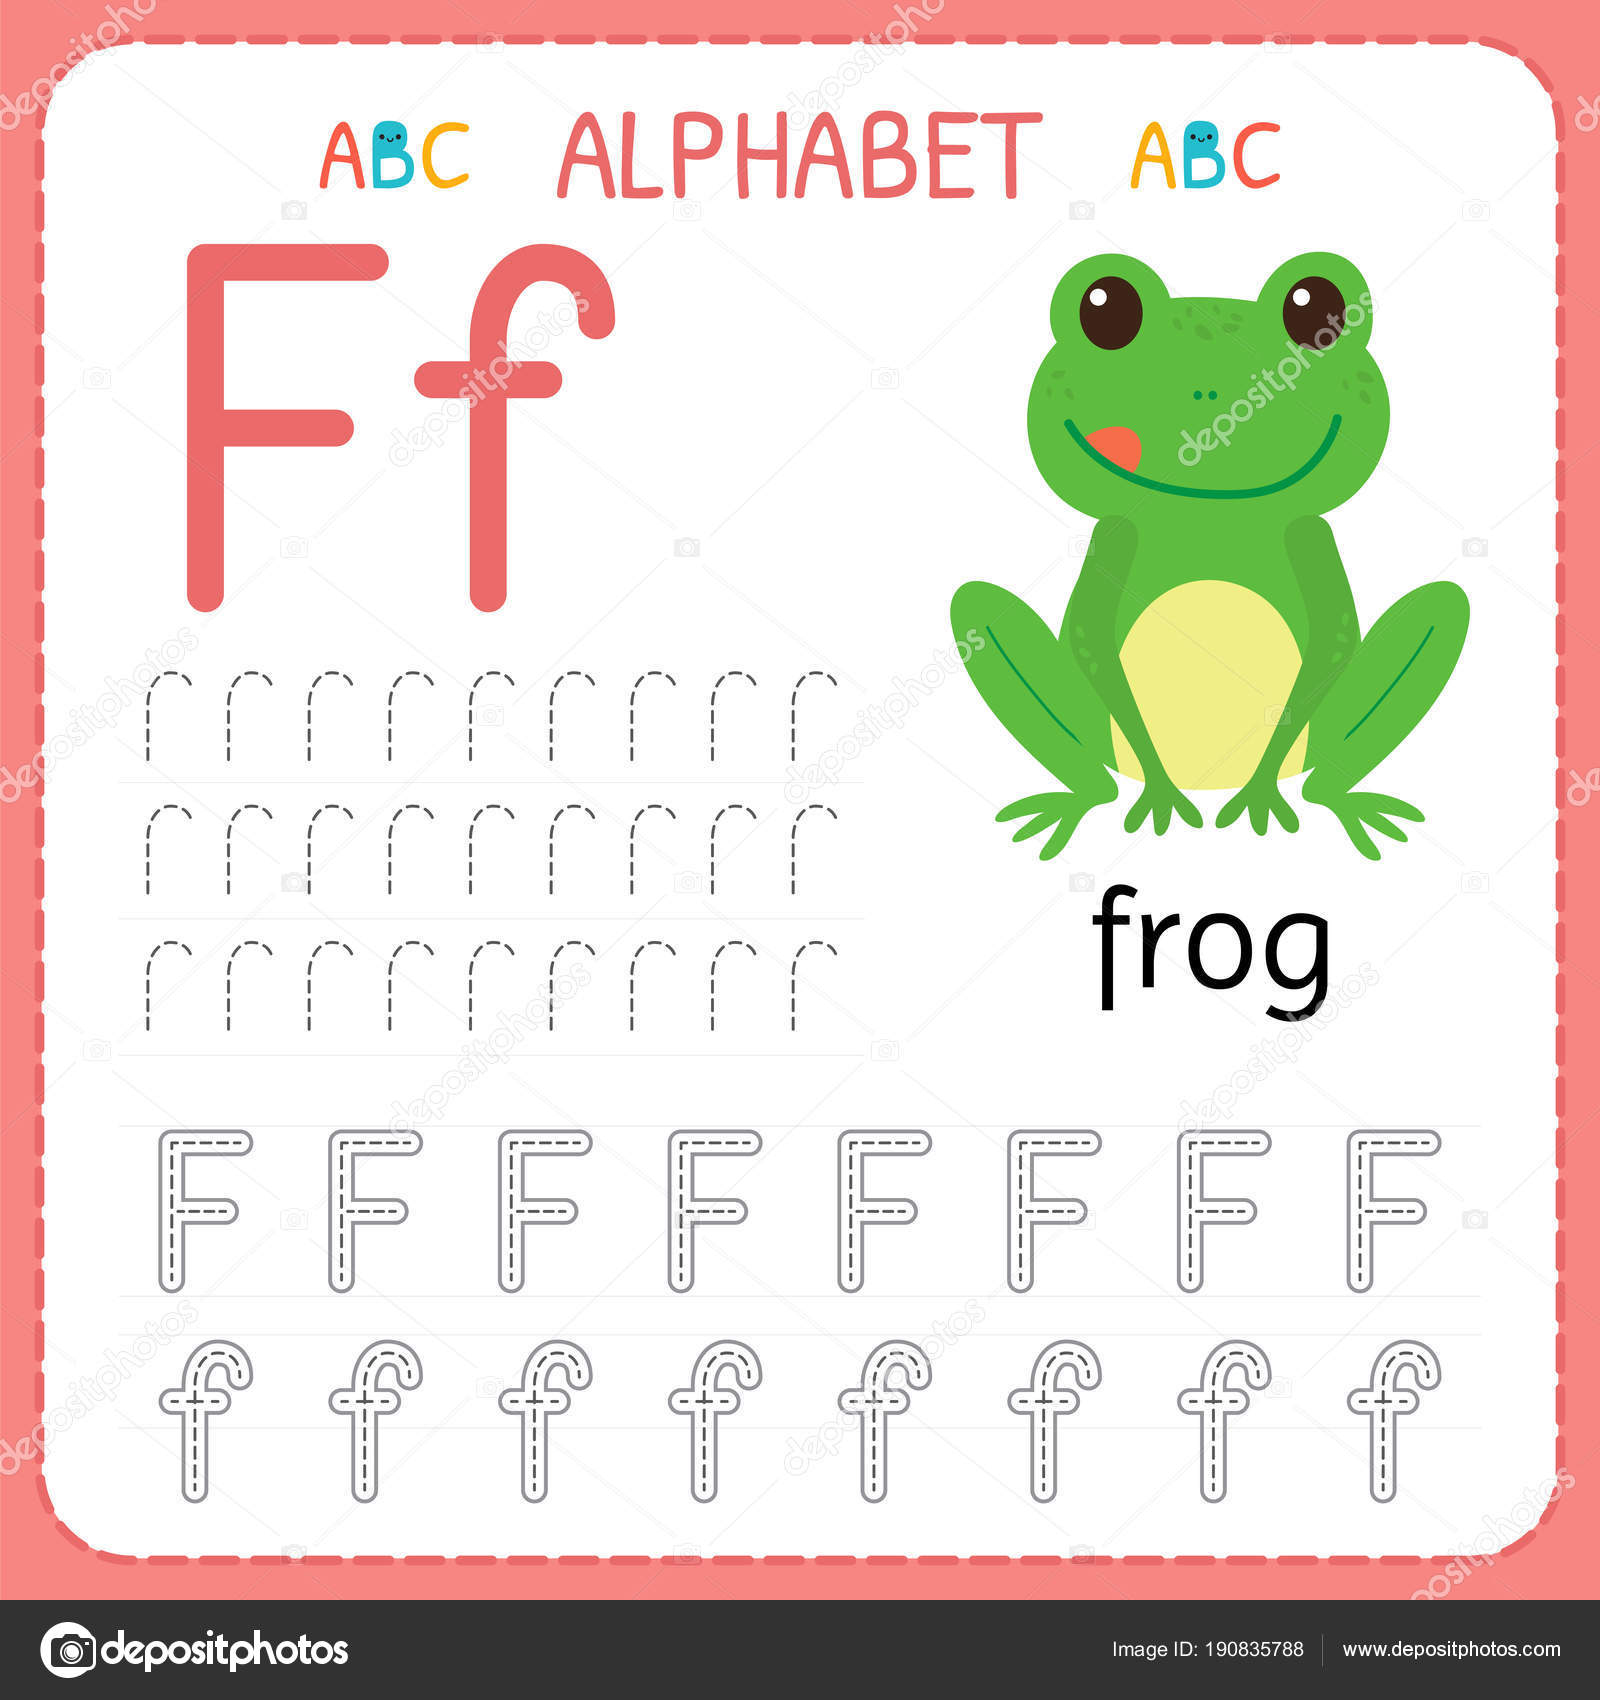 Alphabet Tracing Worksheet For Preschool And Kindergarten Writing Practice Letter F Exercises